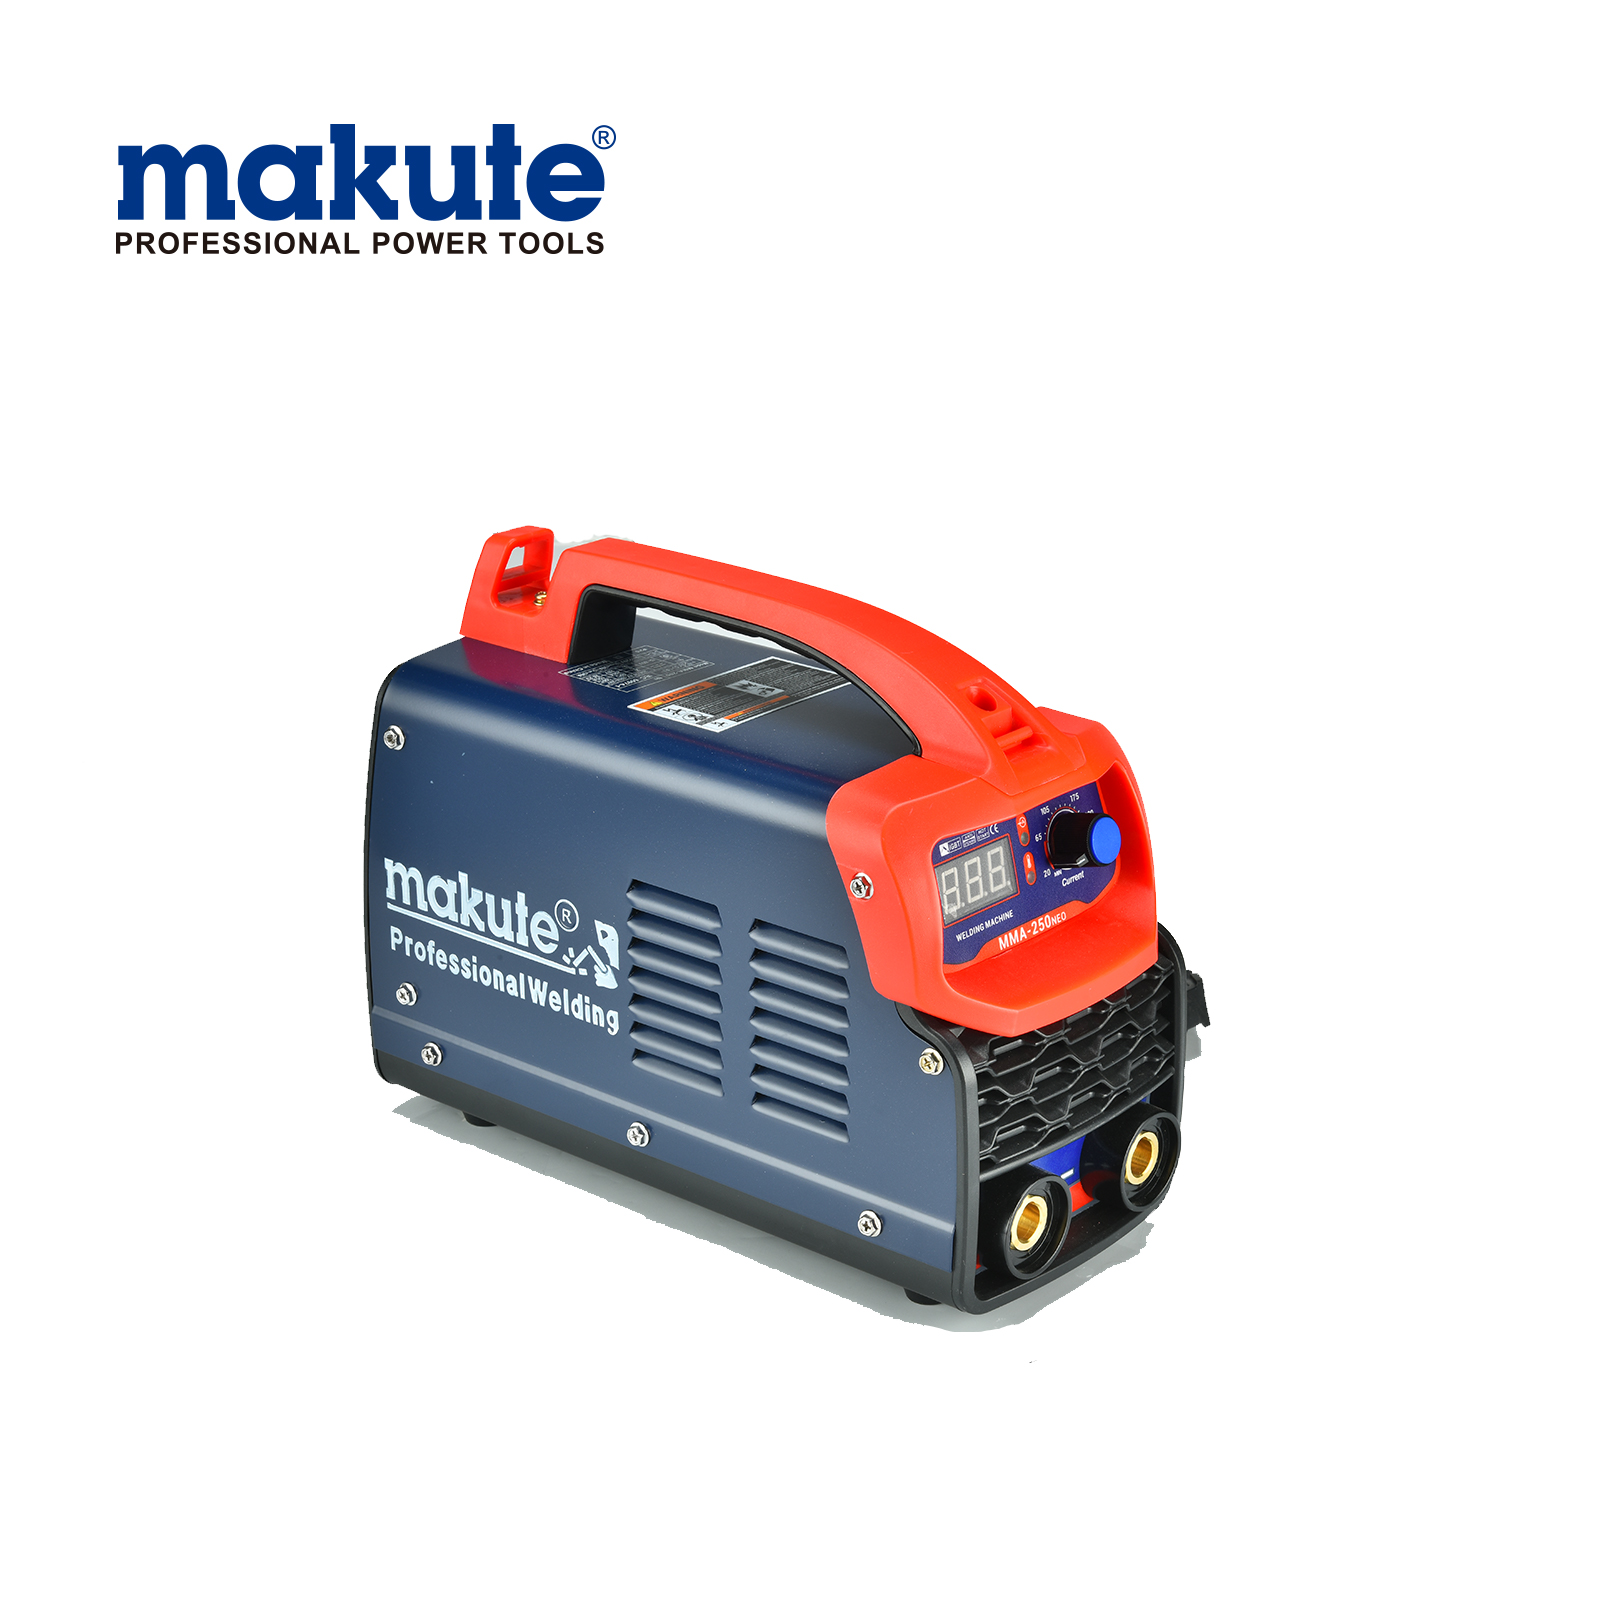 welding machine makute Easy To Operate Welding Machine MMA-250NEO welder